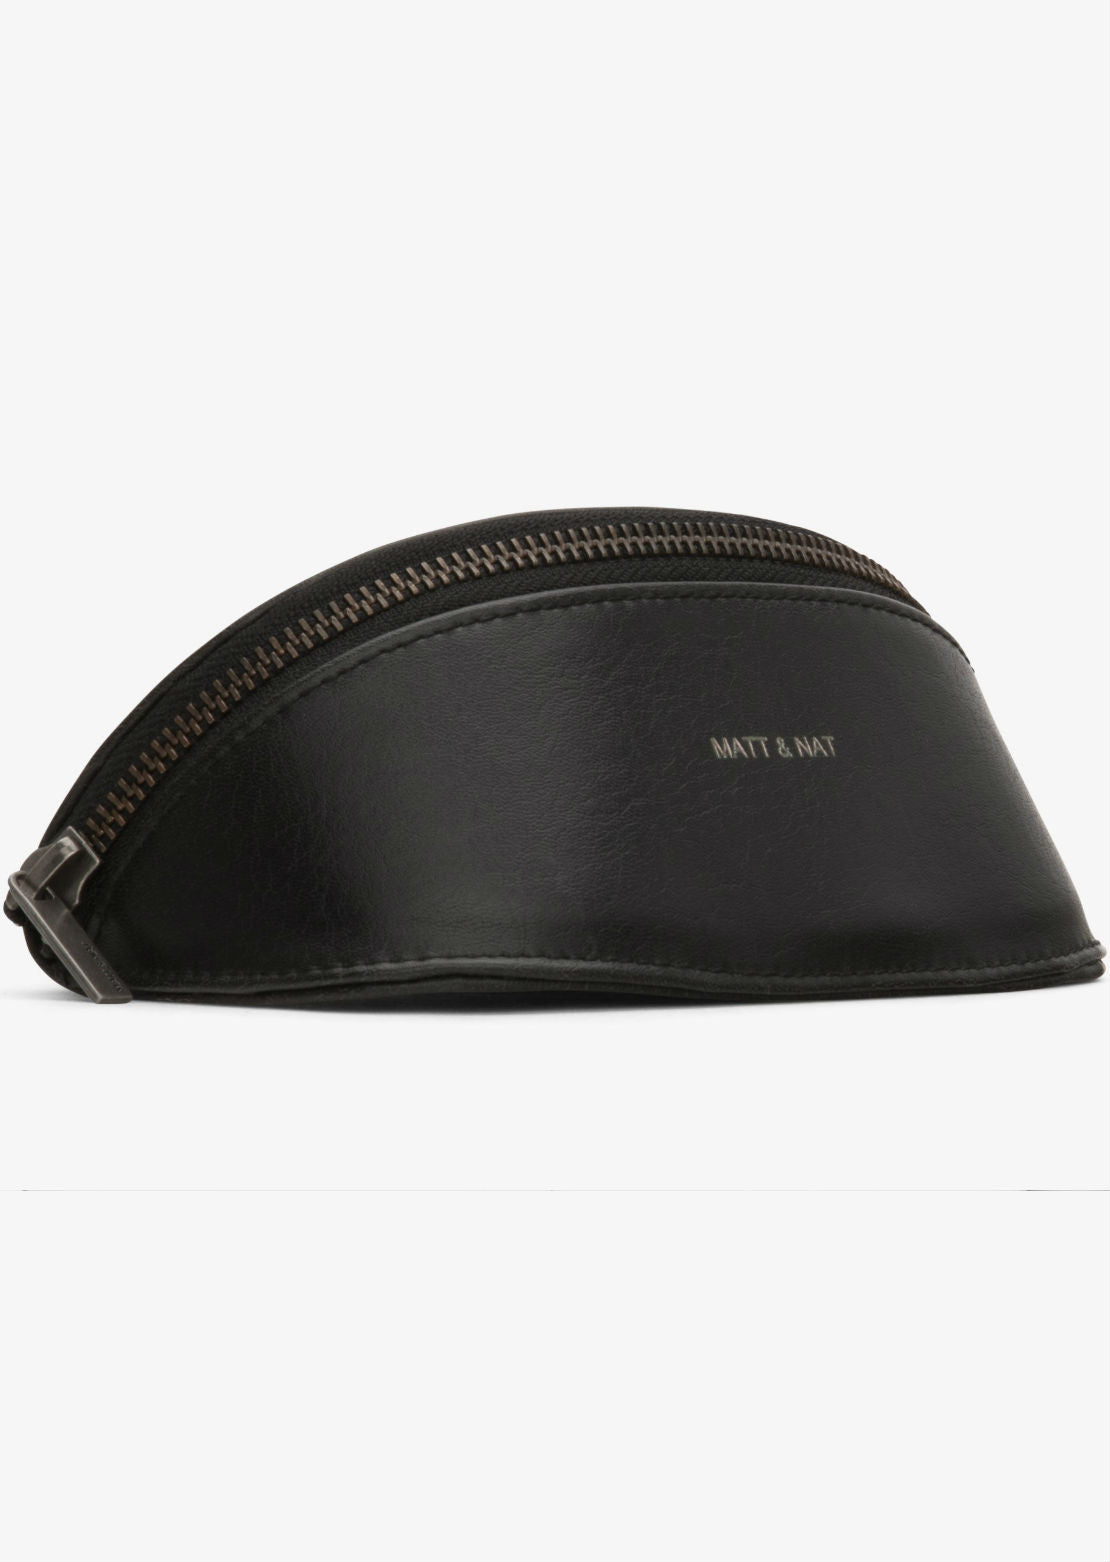 Matt & Nat Solar Sunglasses Case